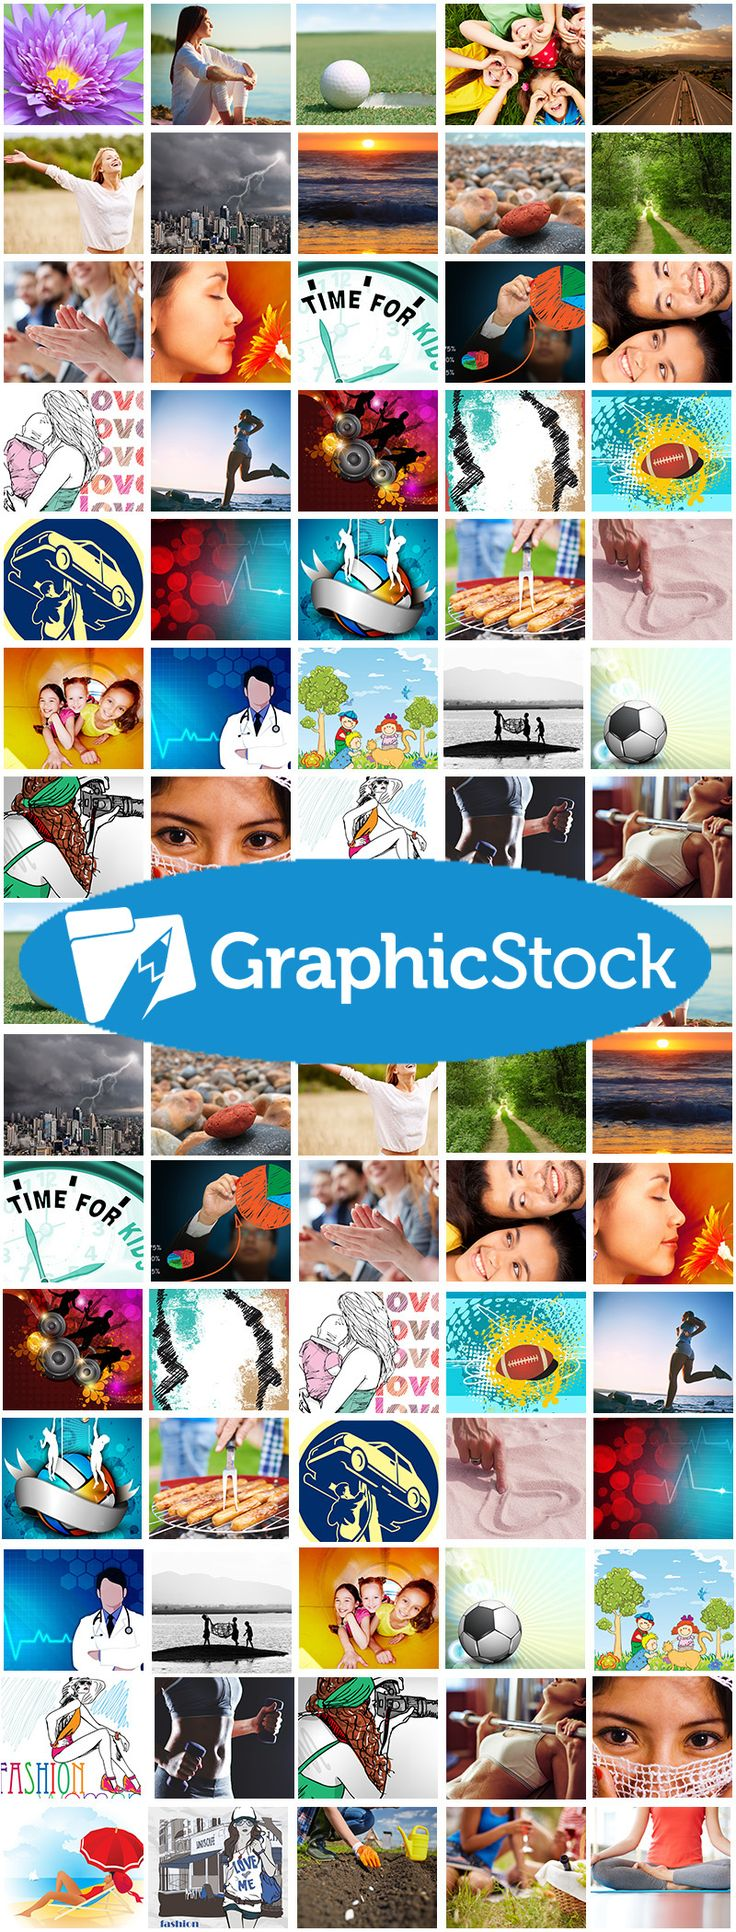 Create beautiful websites, marketing materials, flyers and more with GraphicStock's extensive library of high quality stock photos and graphics. Our image library is easy to use, continually updated, and available to you for an incredibly low annual price. Start unlimited downloading today with your free 7- day trial!